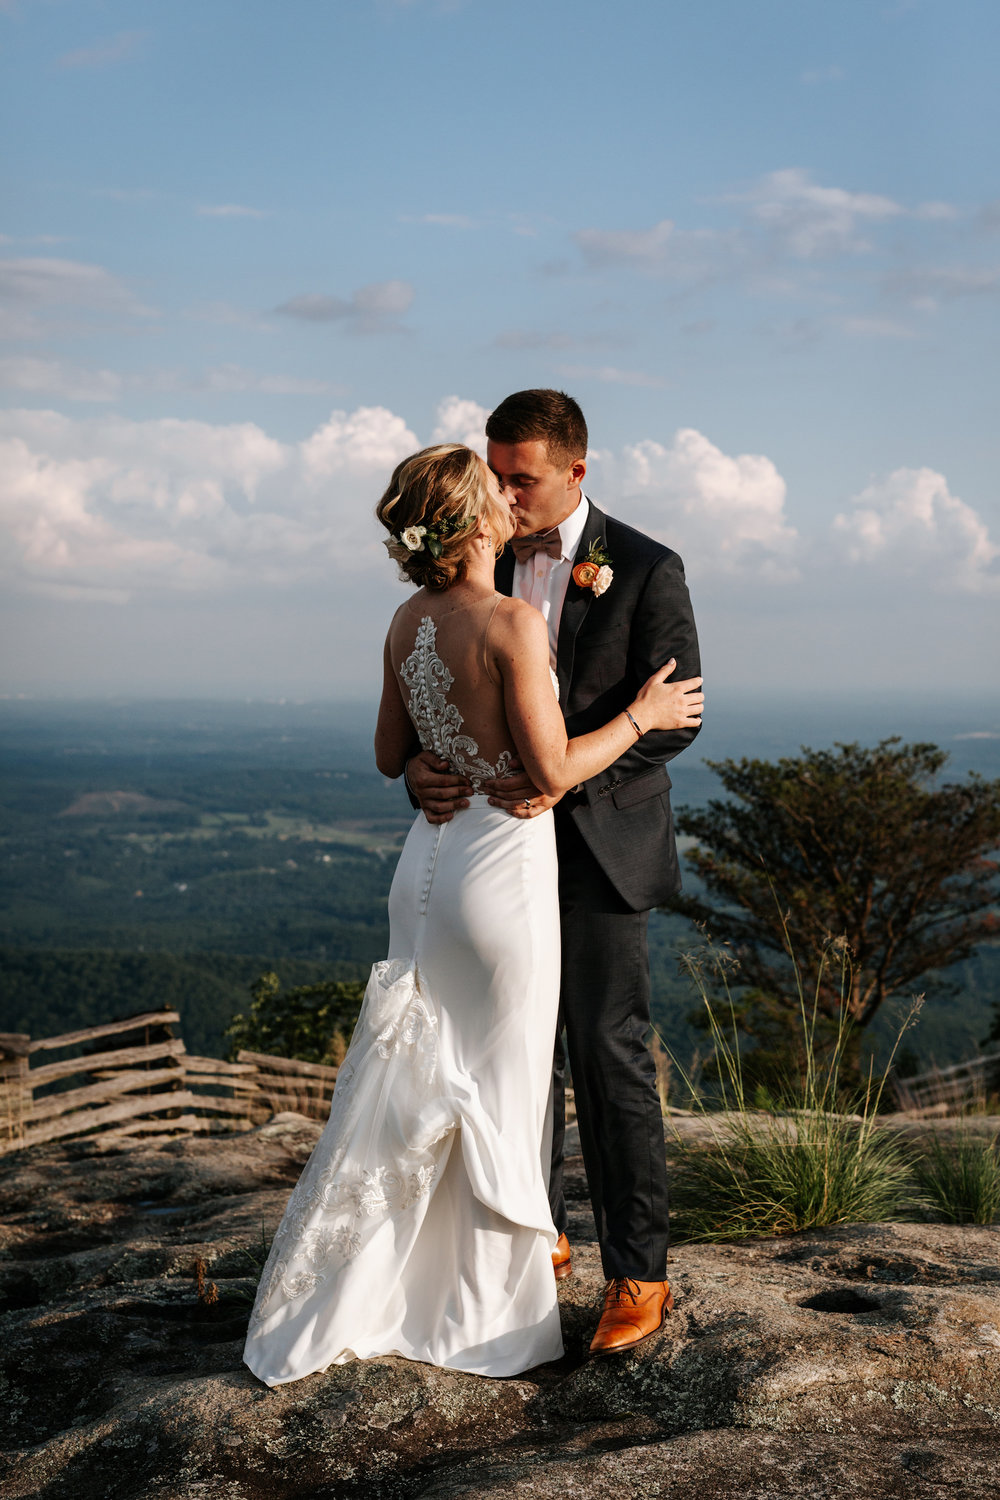 wedding-engagement-photographer-spartanburg-greenville-columbia-carolina-south-north-525.JPG